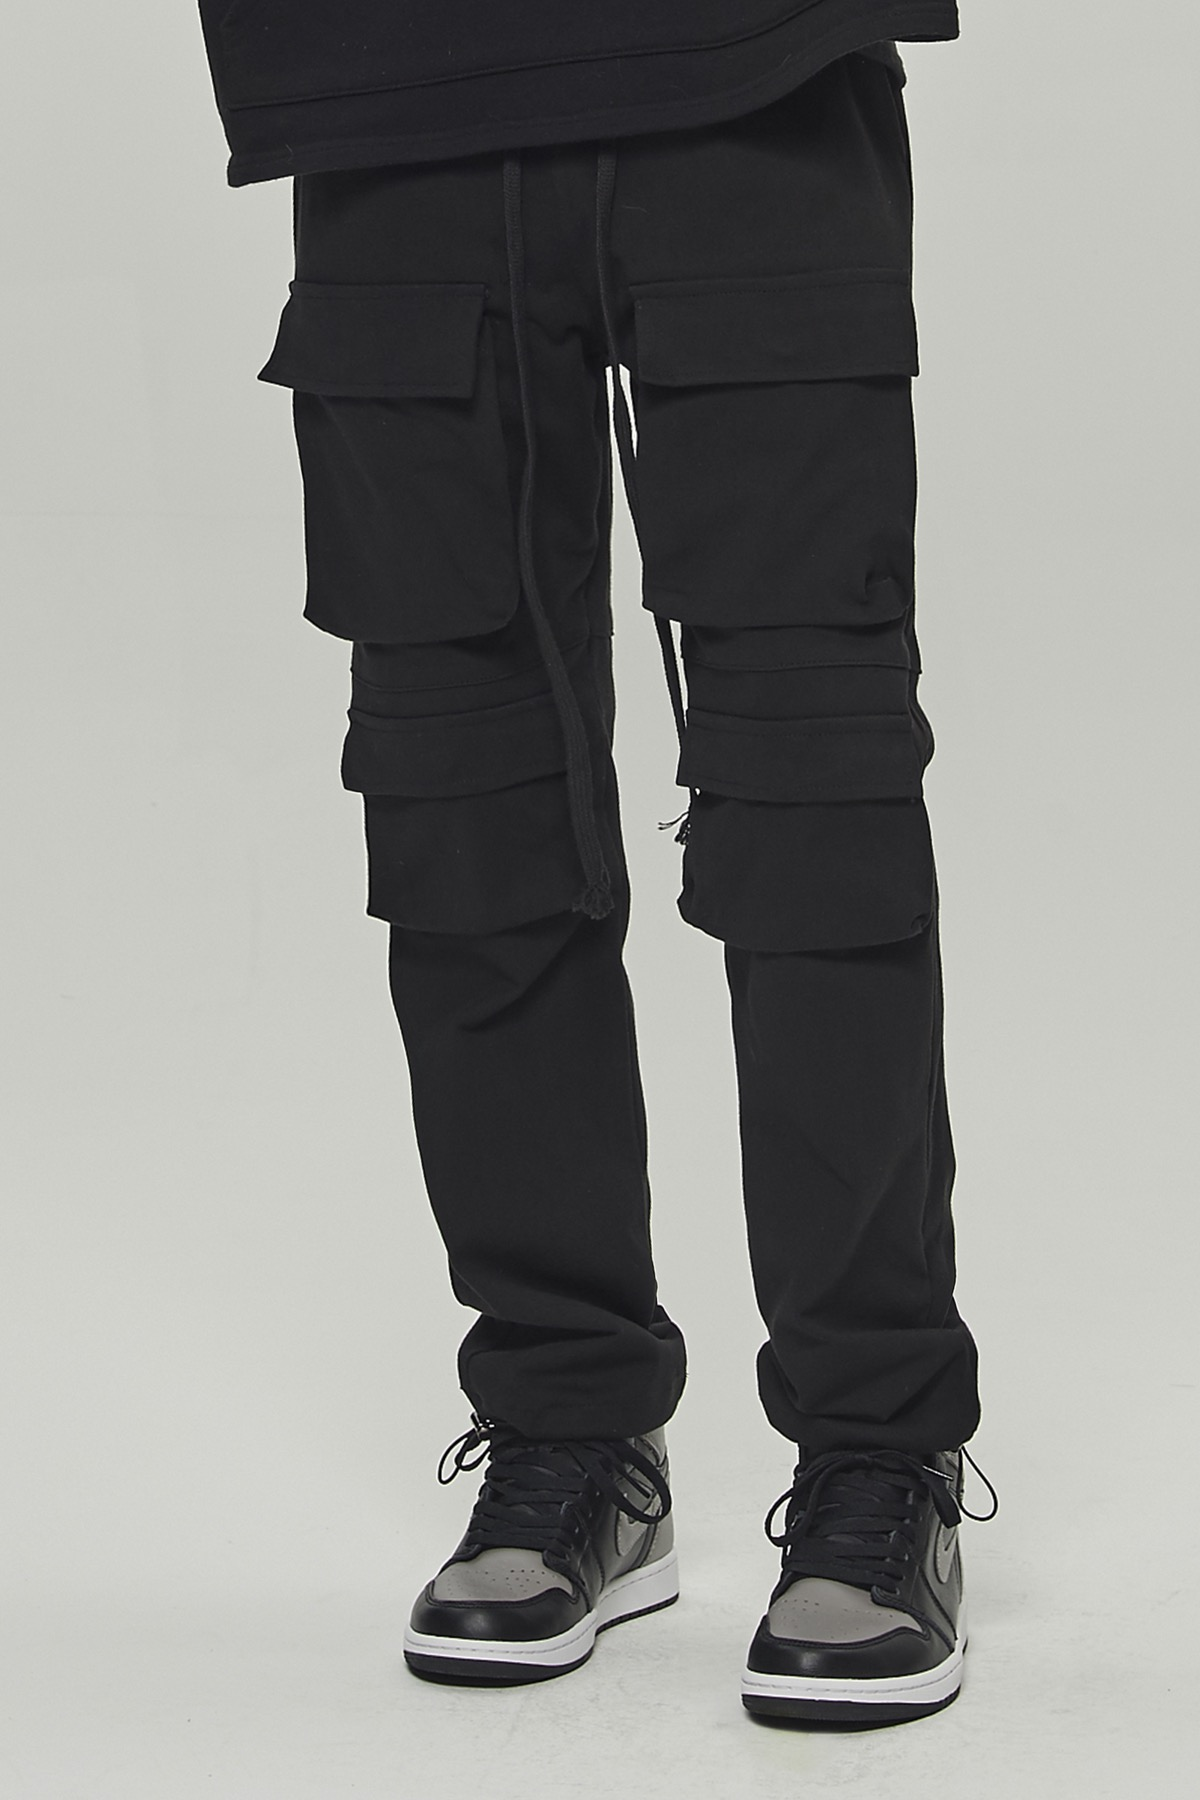 BLACK MULTI POCKET CARGO STRING PANTS